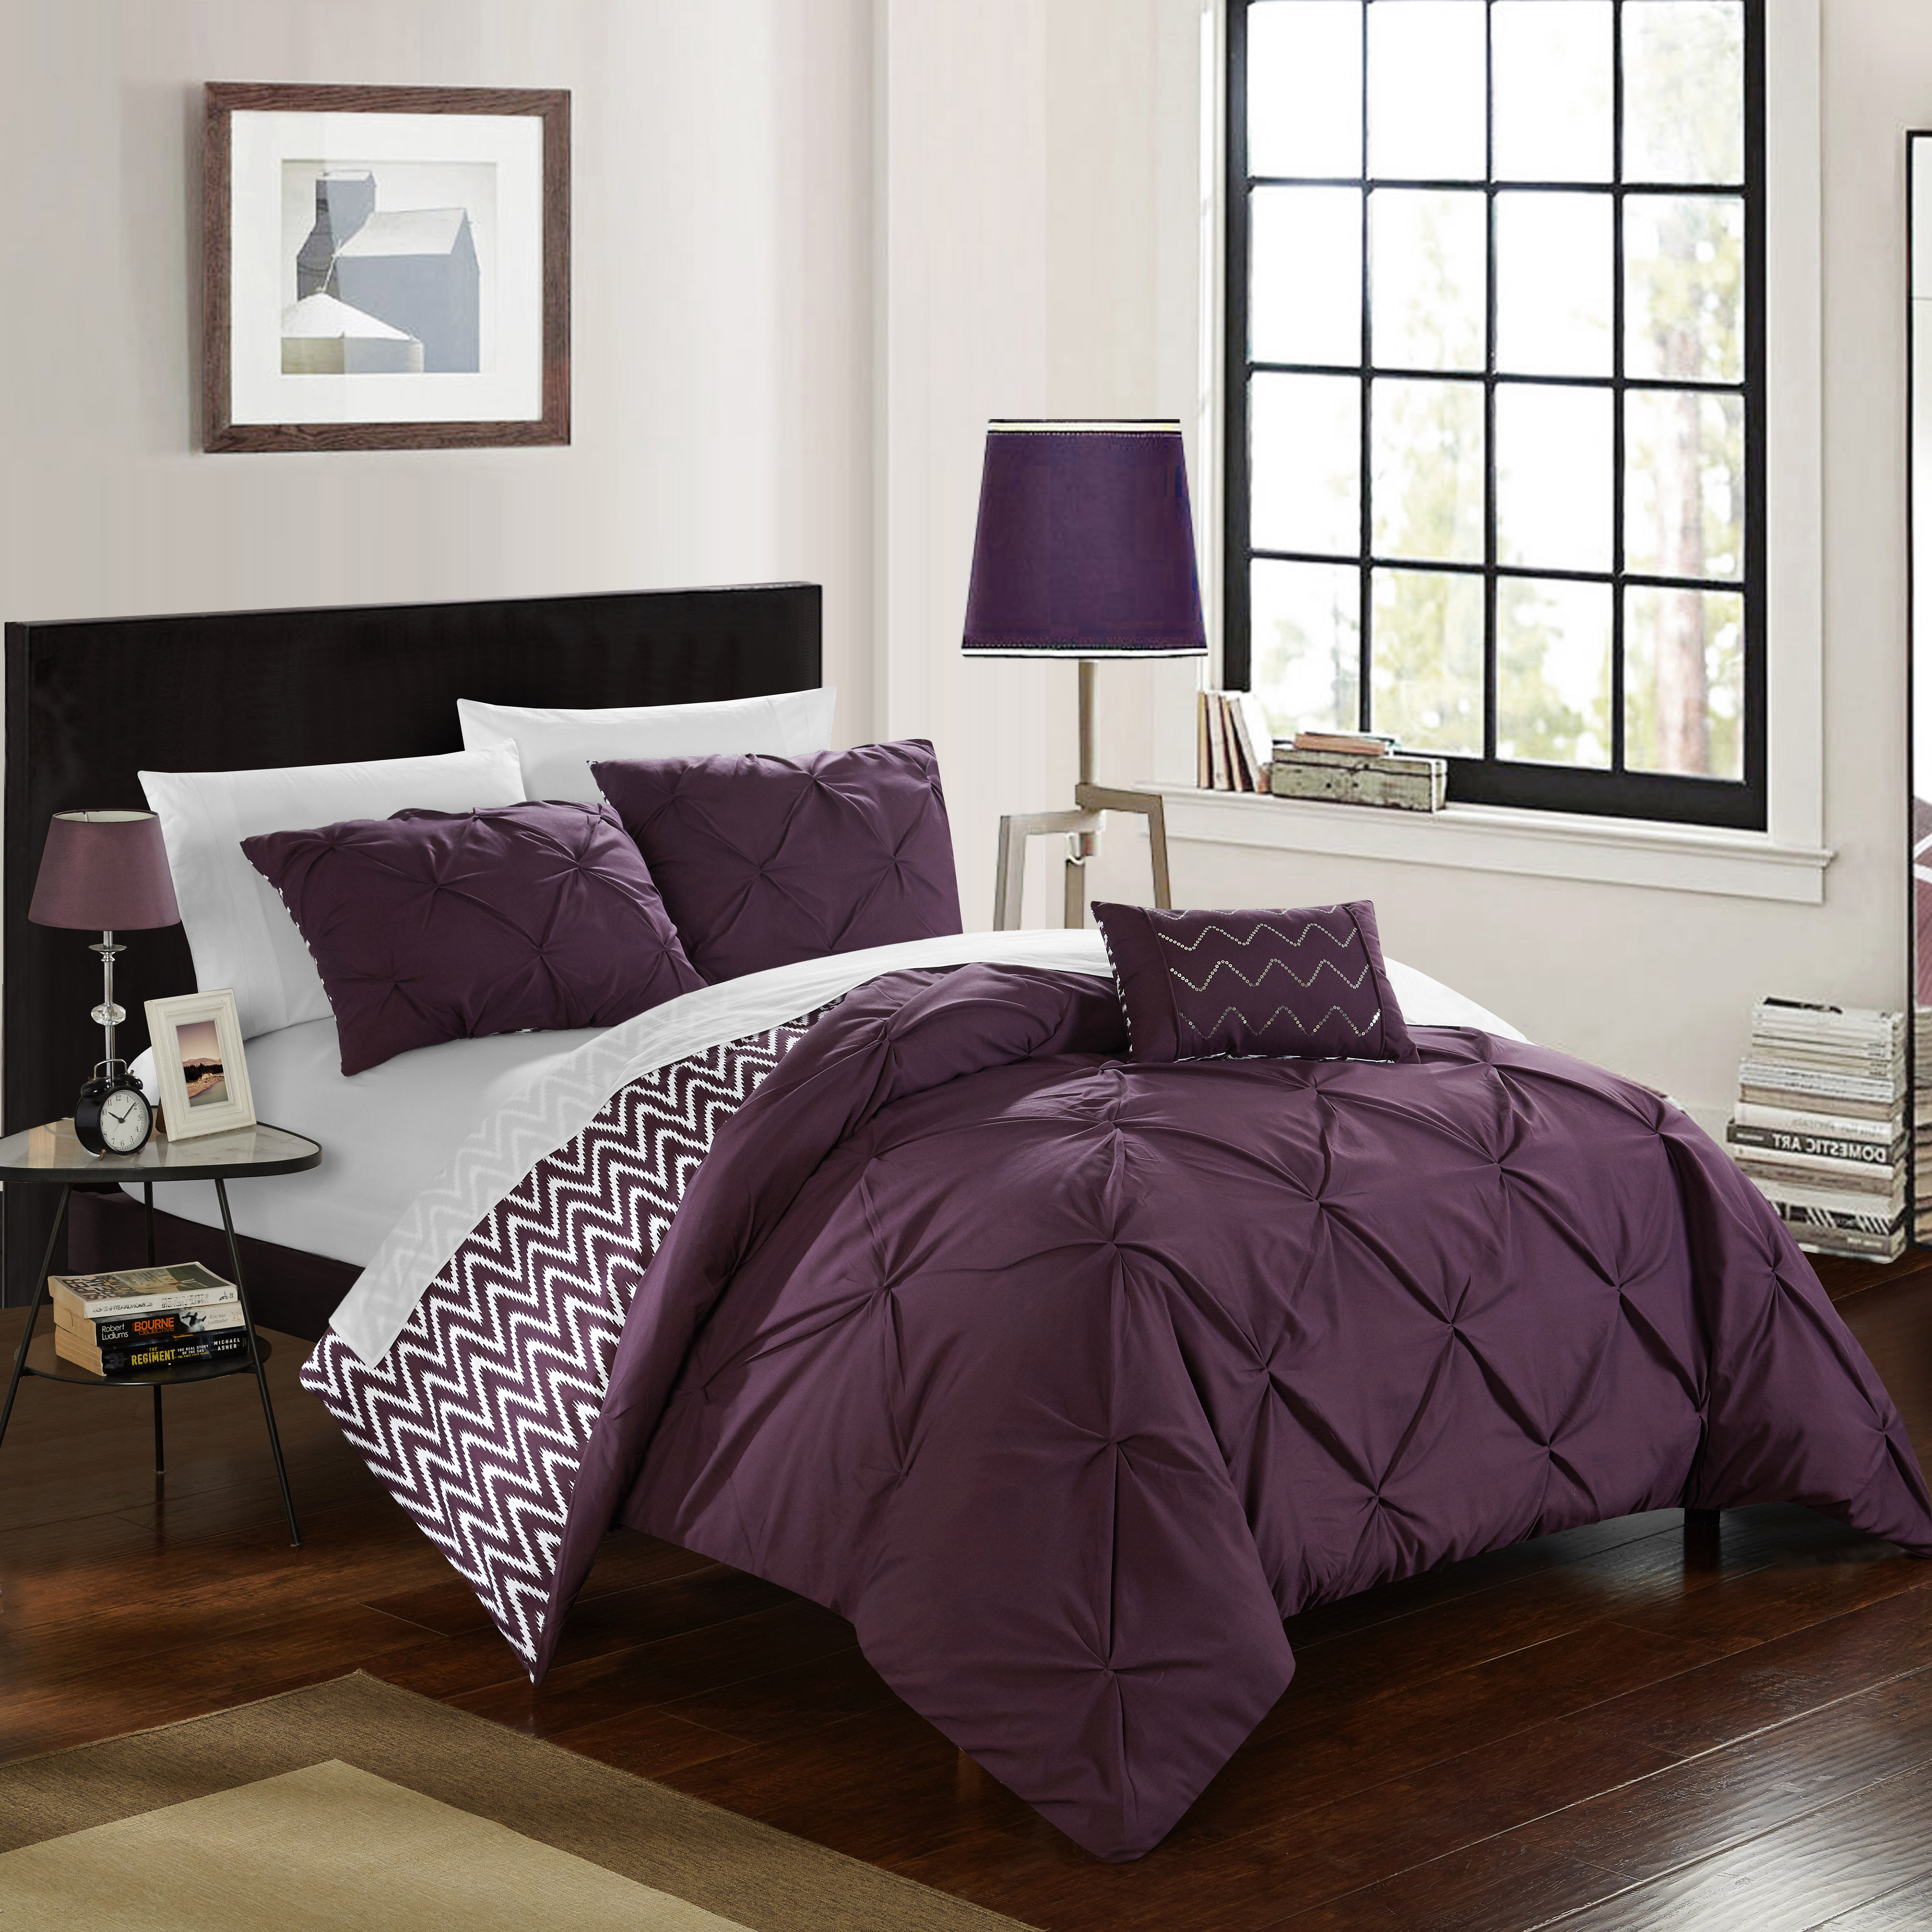 Chic Home 4-Piece Erin Pinch Pleated, REVERSIBLE Chevron Print ruffled and pleated complete Full/Queen Comforter Set Purple Shams and Decorative Pillows included